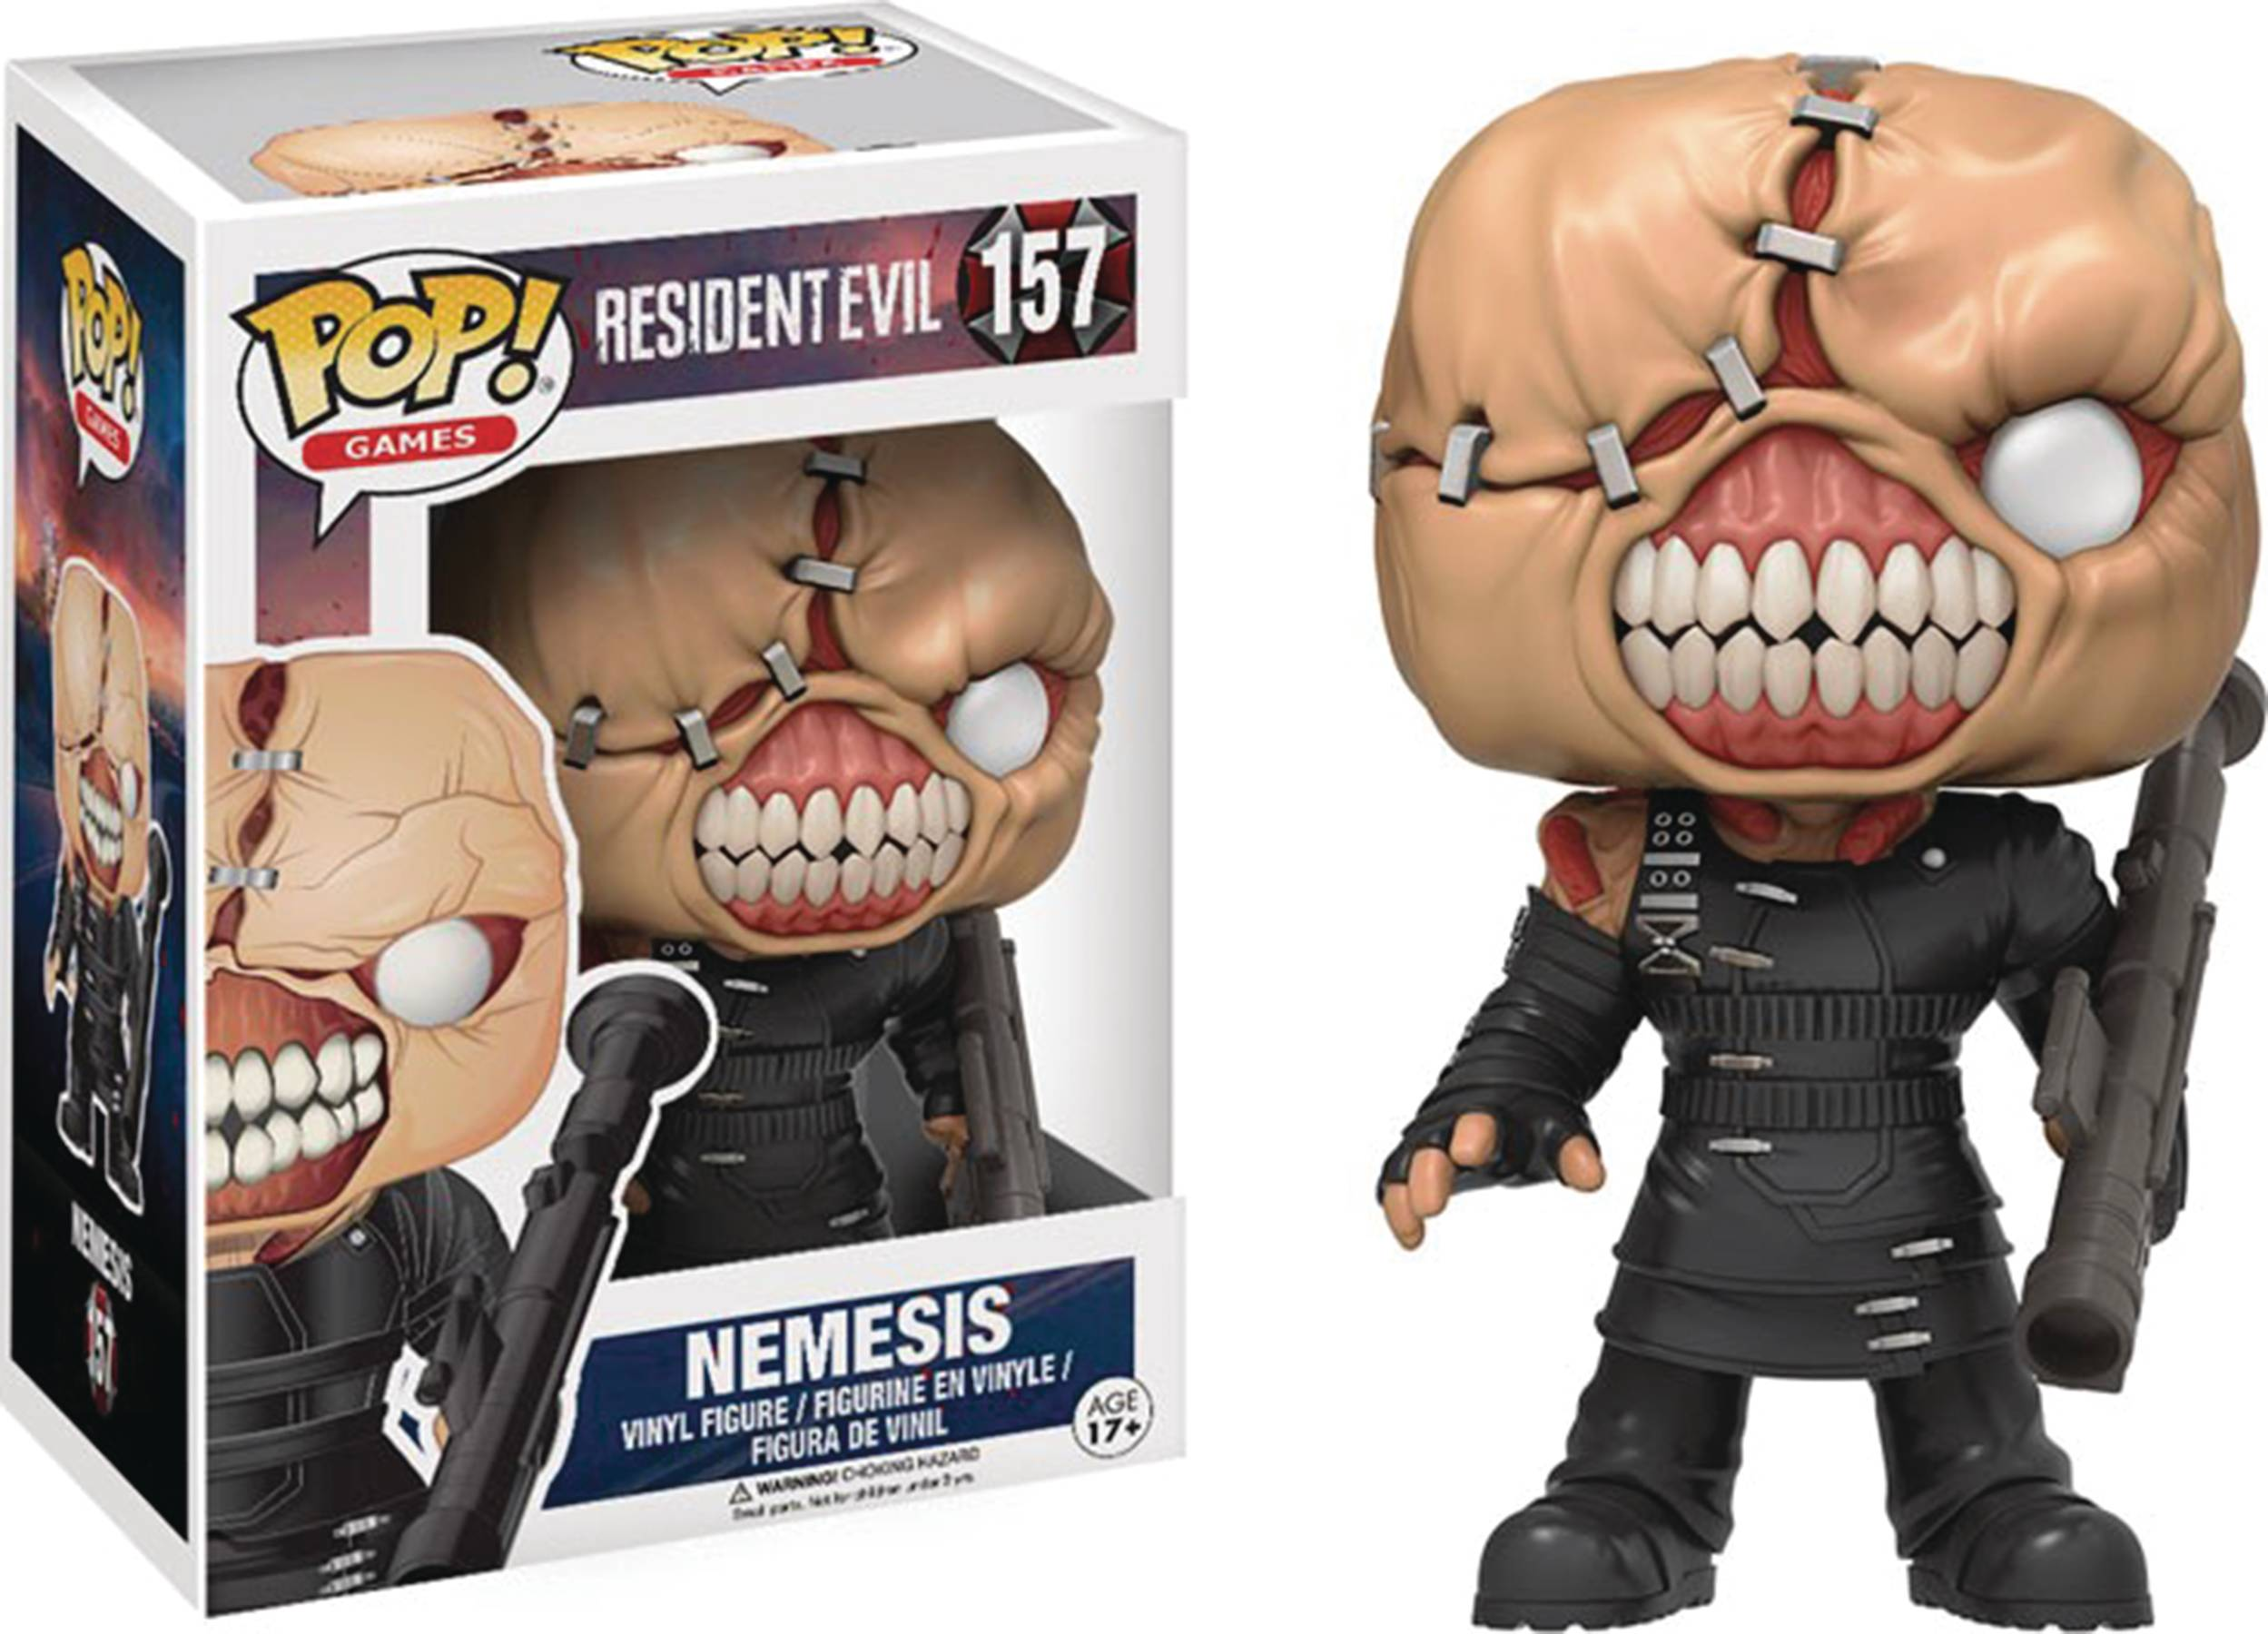 POP RESIDENT EVIL NEMESIS VINYL FIG